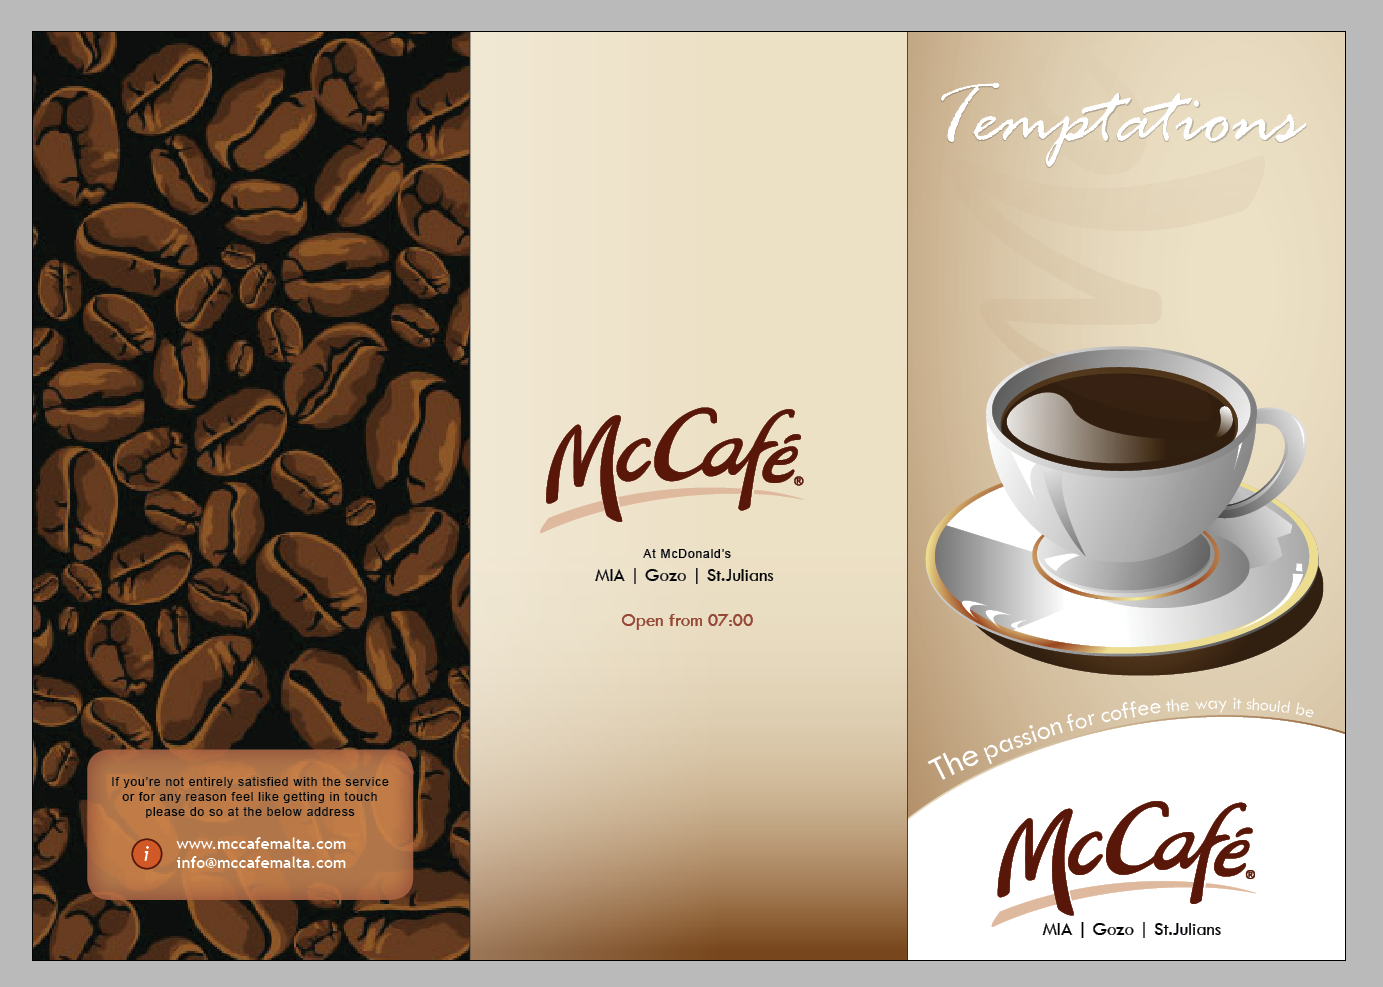 Menu Design Ideas oriental restaurant menu design ideas restaurant menu design that can give you inspiration home design Mccafe Menu Design _front By Mangiondeviantartcom On Deviantart